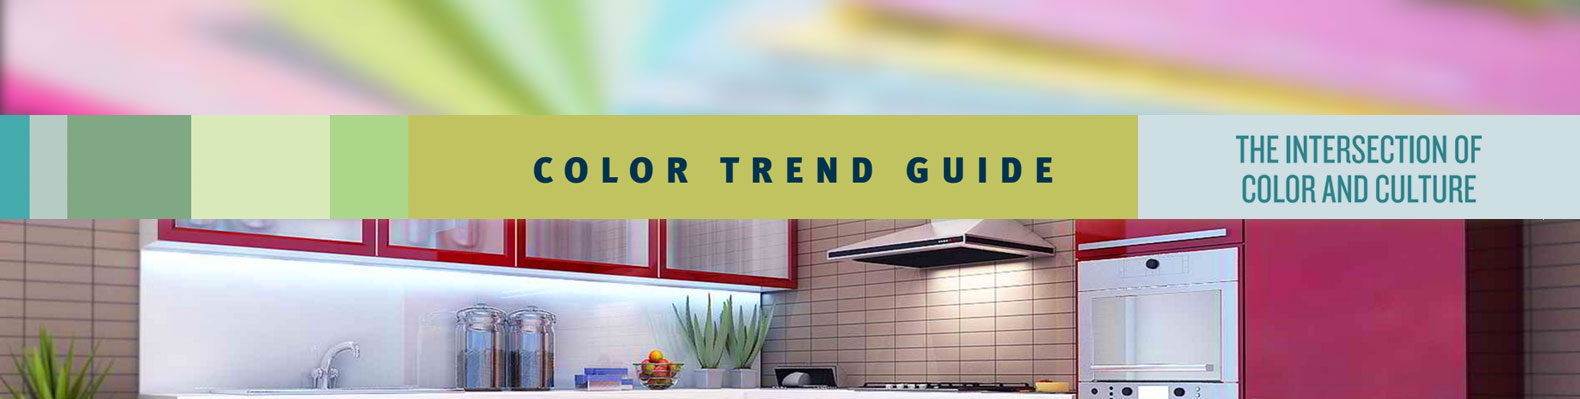 How Color Choices Impact The Feel Of Your Home Inhabitat Green Design Innovation